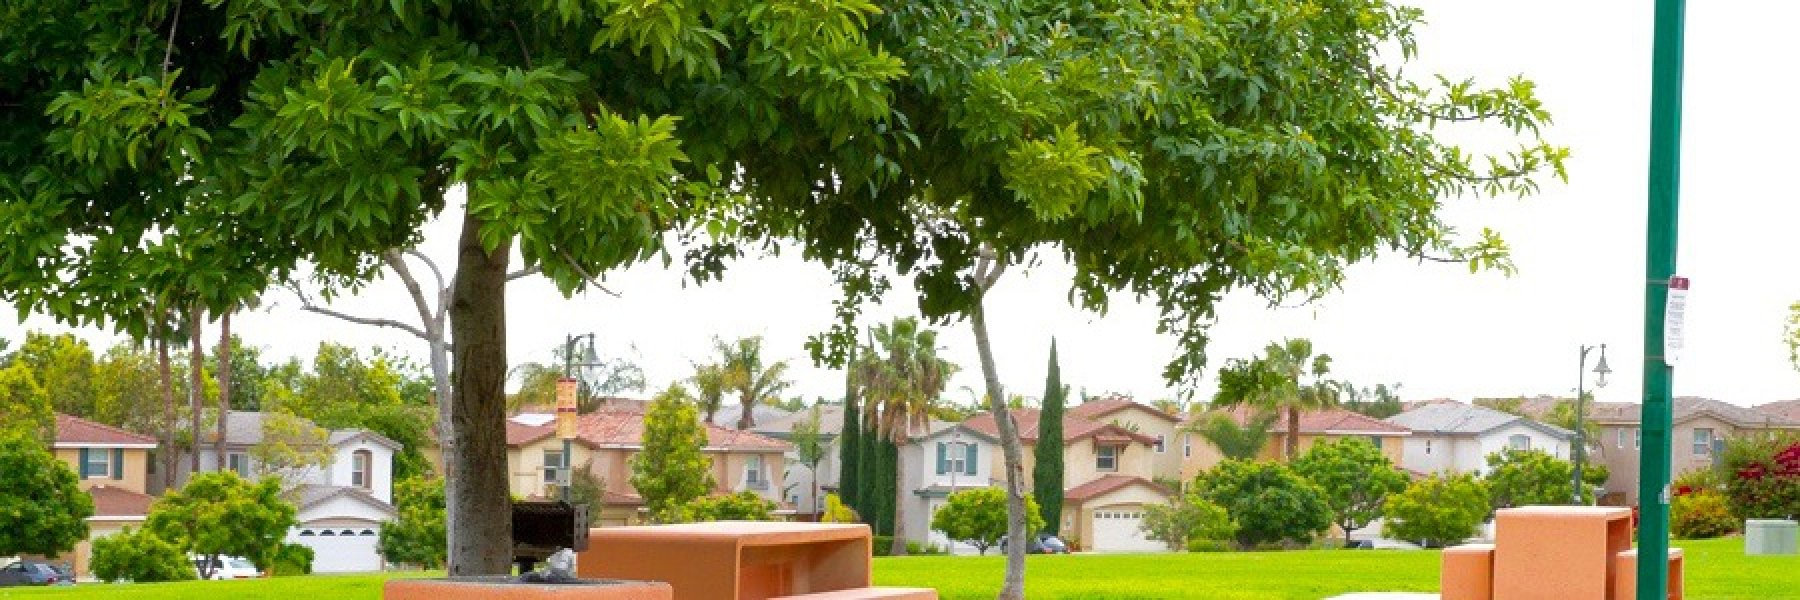 Lomas Verdes is a community of homes in Chula Vista